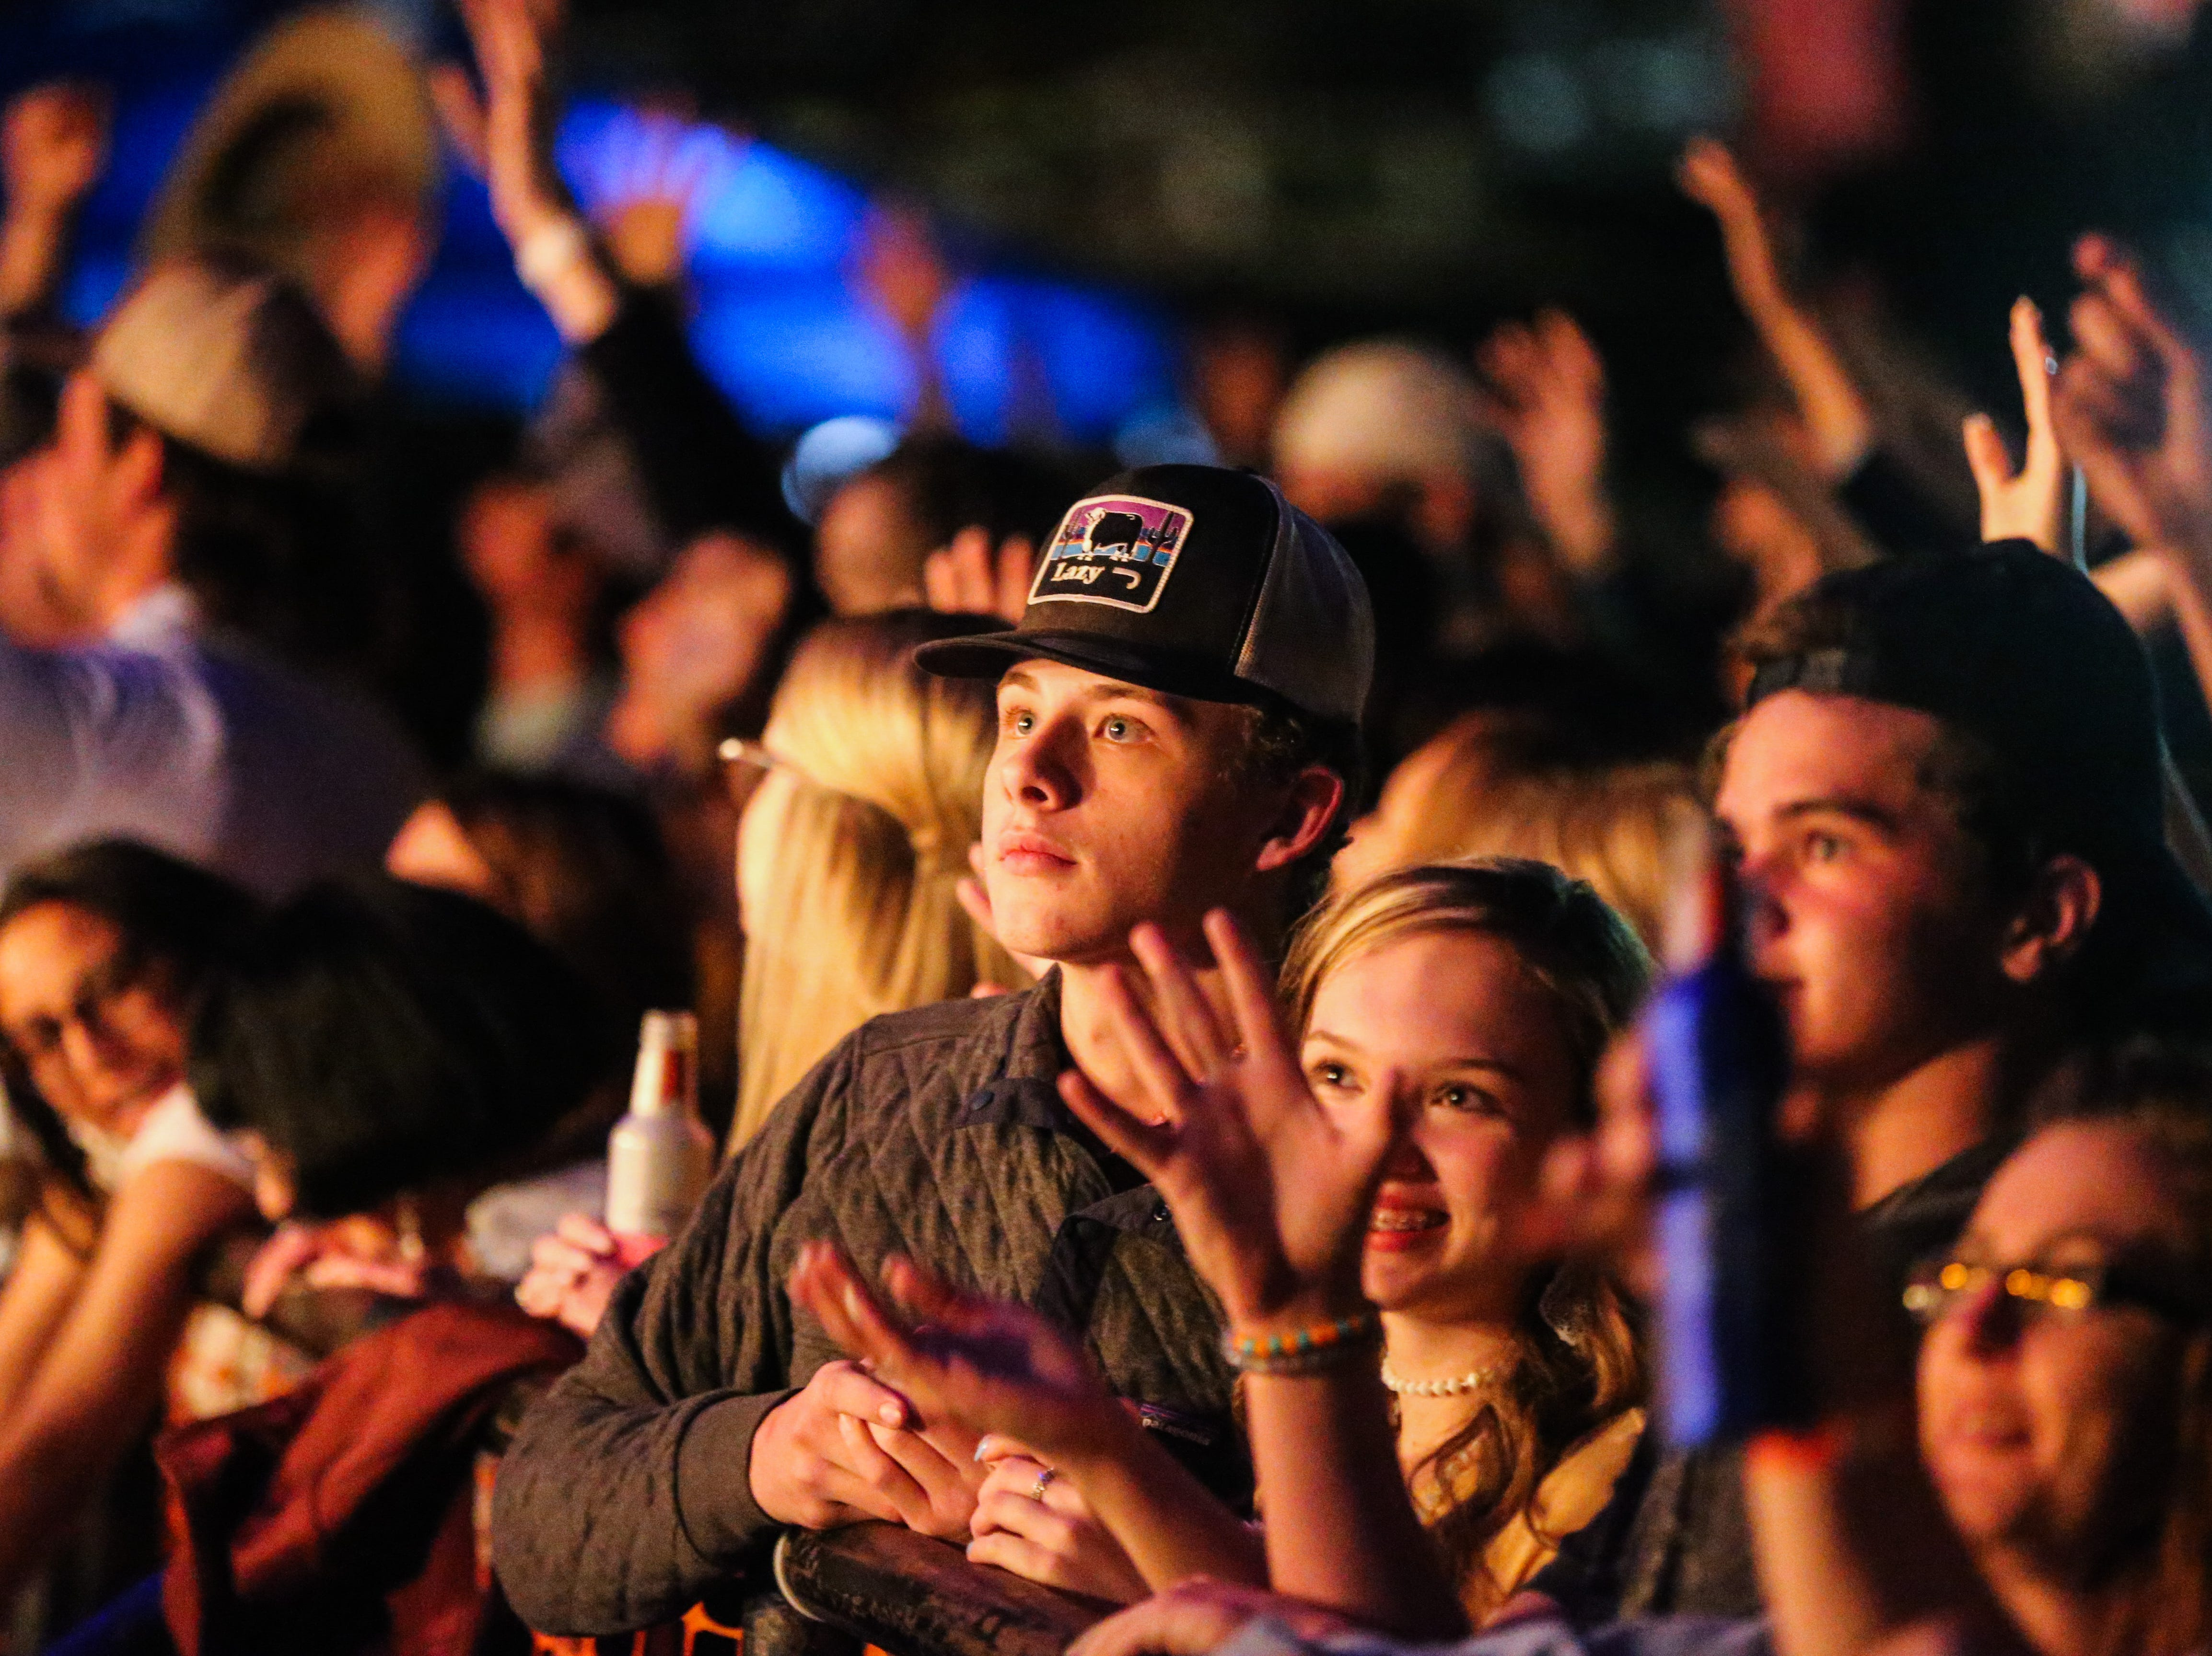 Concert goers cheer on as announcers take the stage before Flatland Cavalry performs during Wild West Fest Friday, March 1, 2019, at the Bill Aylor Sr. Memorial RiverStage.